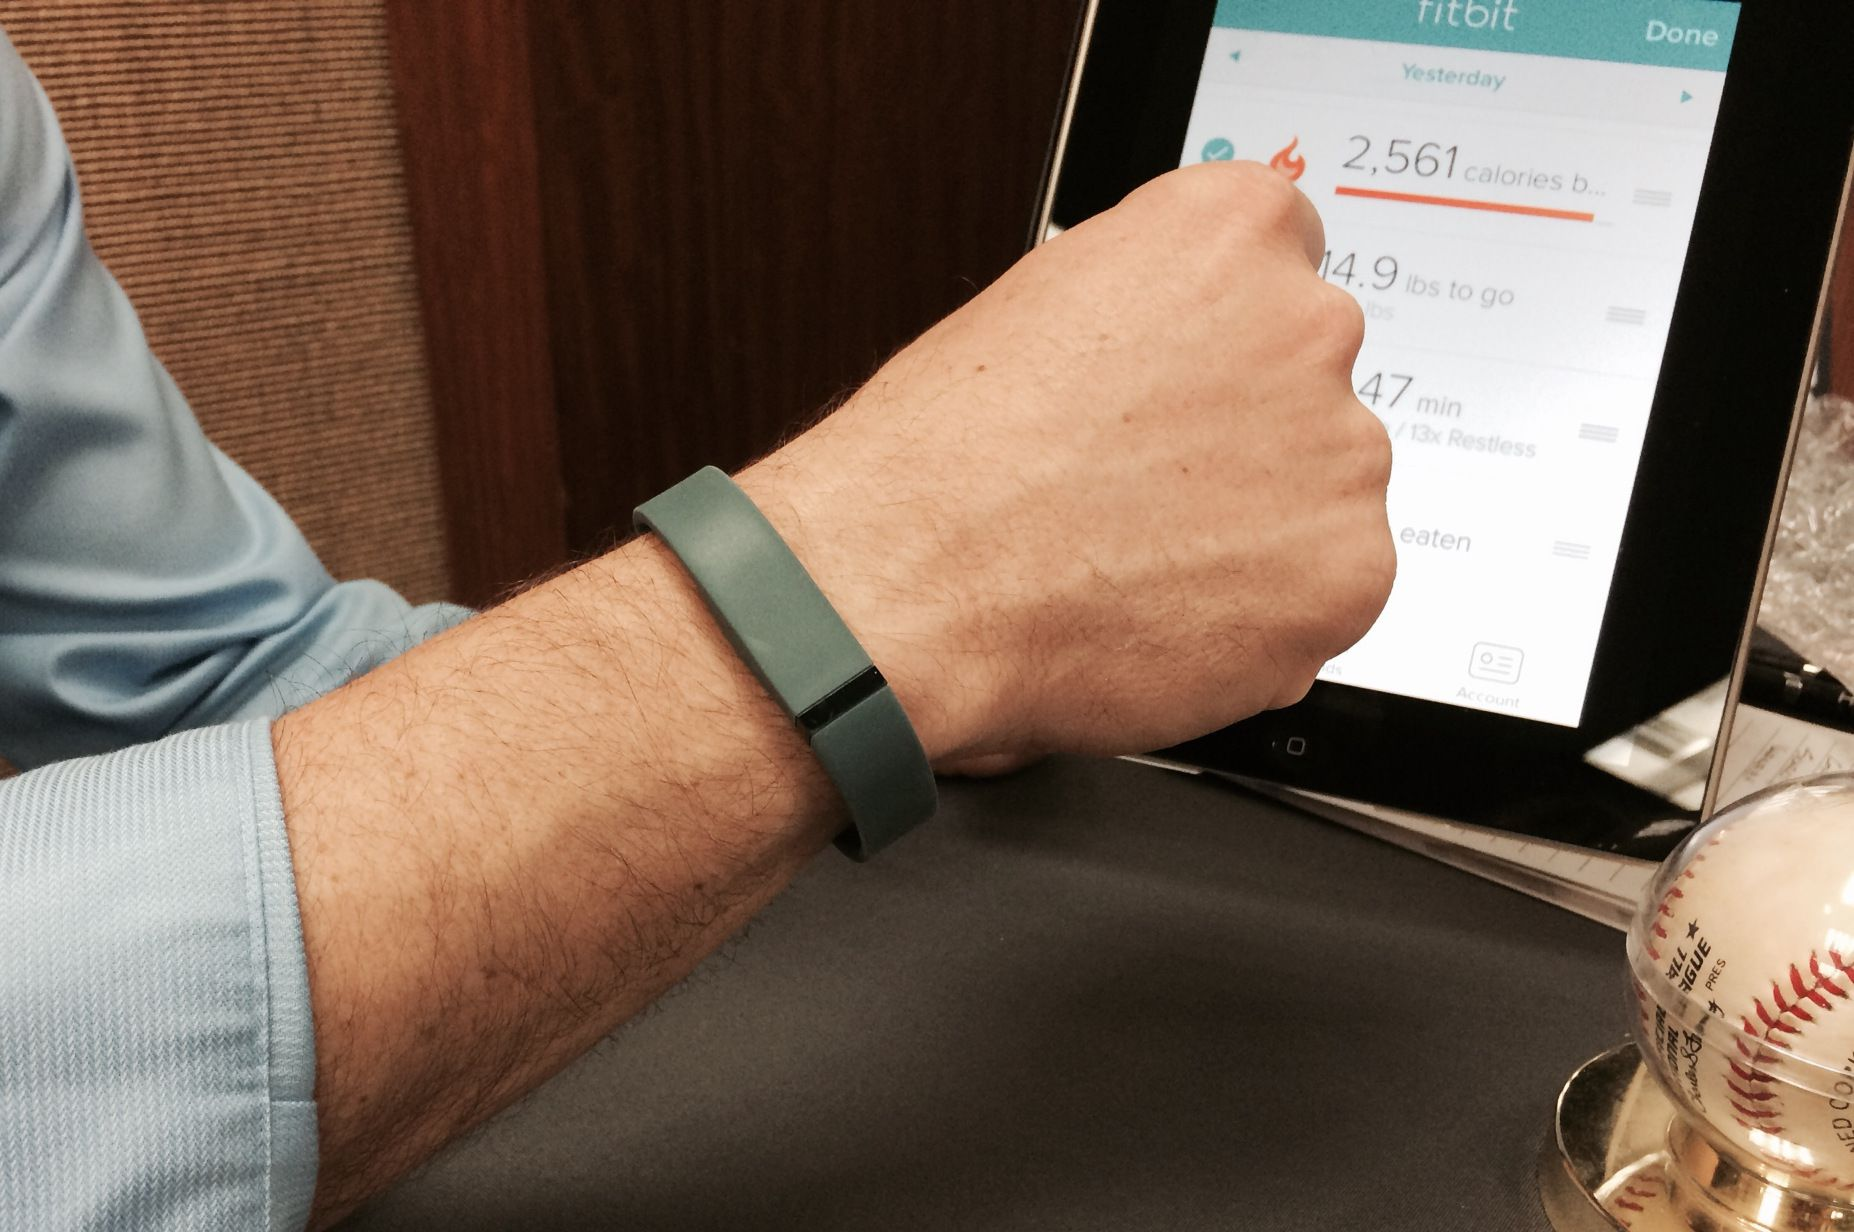 7 Fitness Tracker Hacks to Addict You to Using It